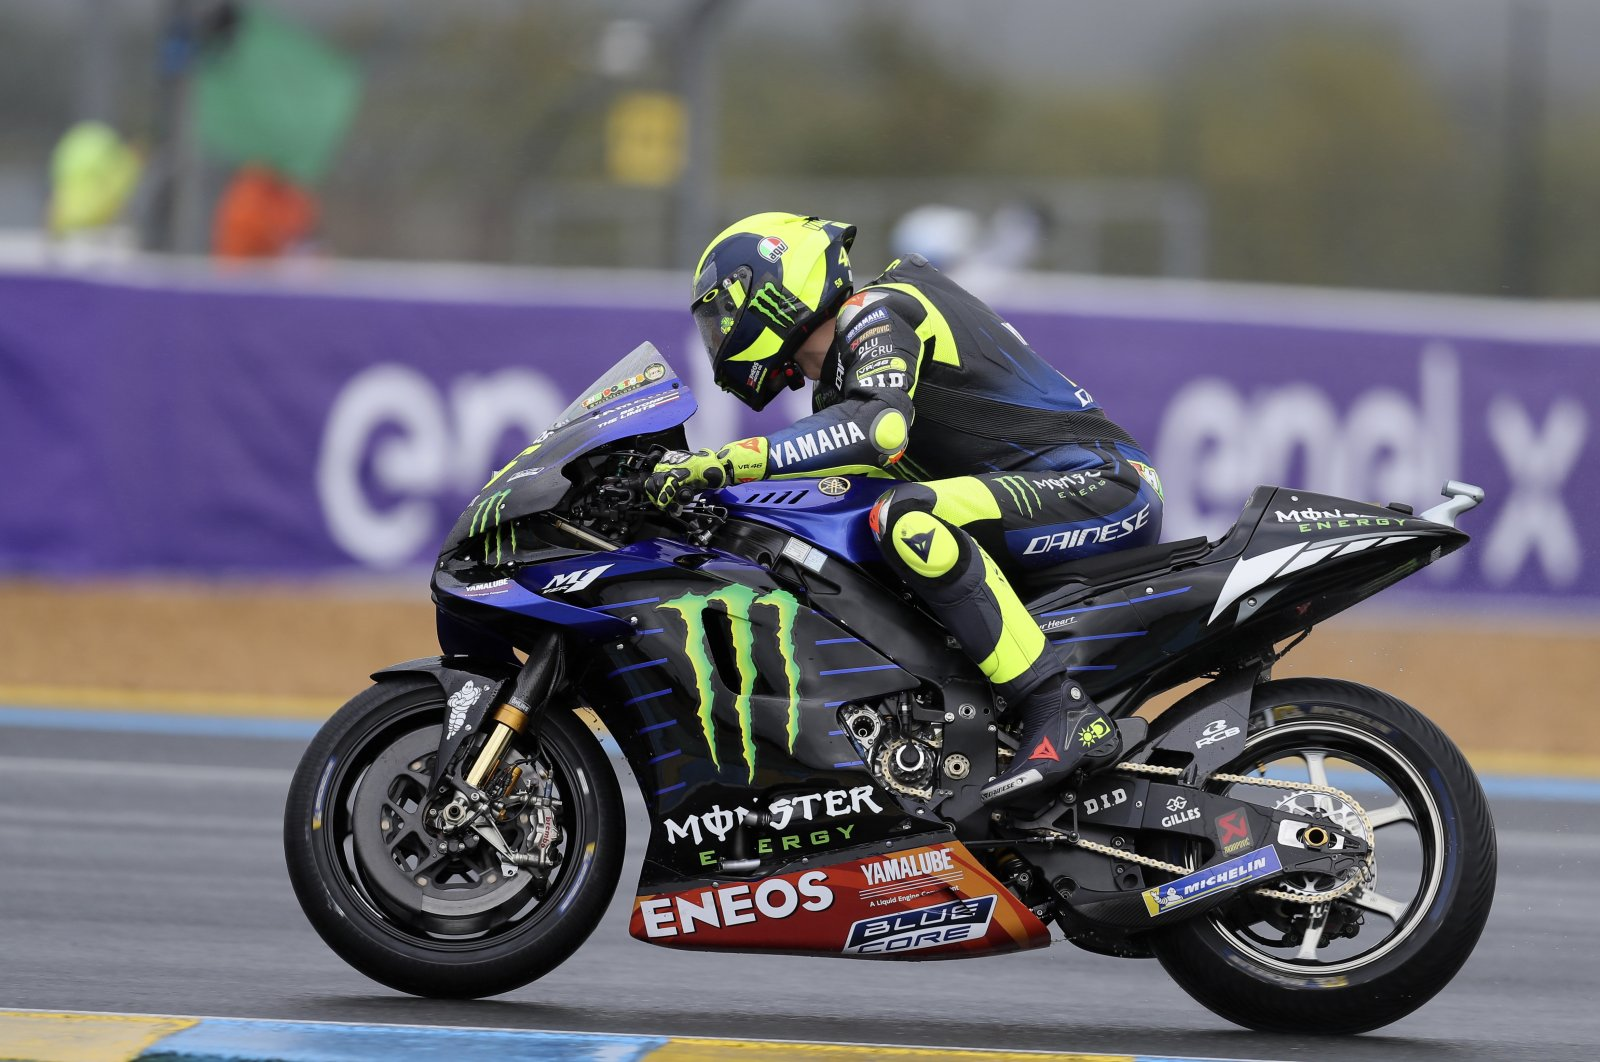 Valentino Rossi a warmup before the French MotoGP race, in Le Mans, France, Oct. 11, 2020. (AP Photo)